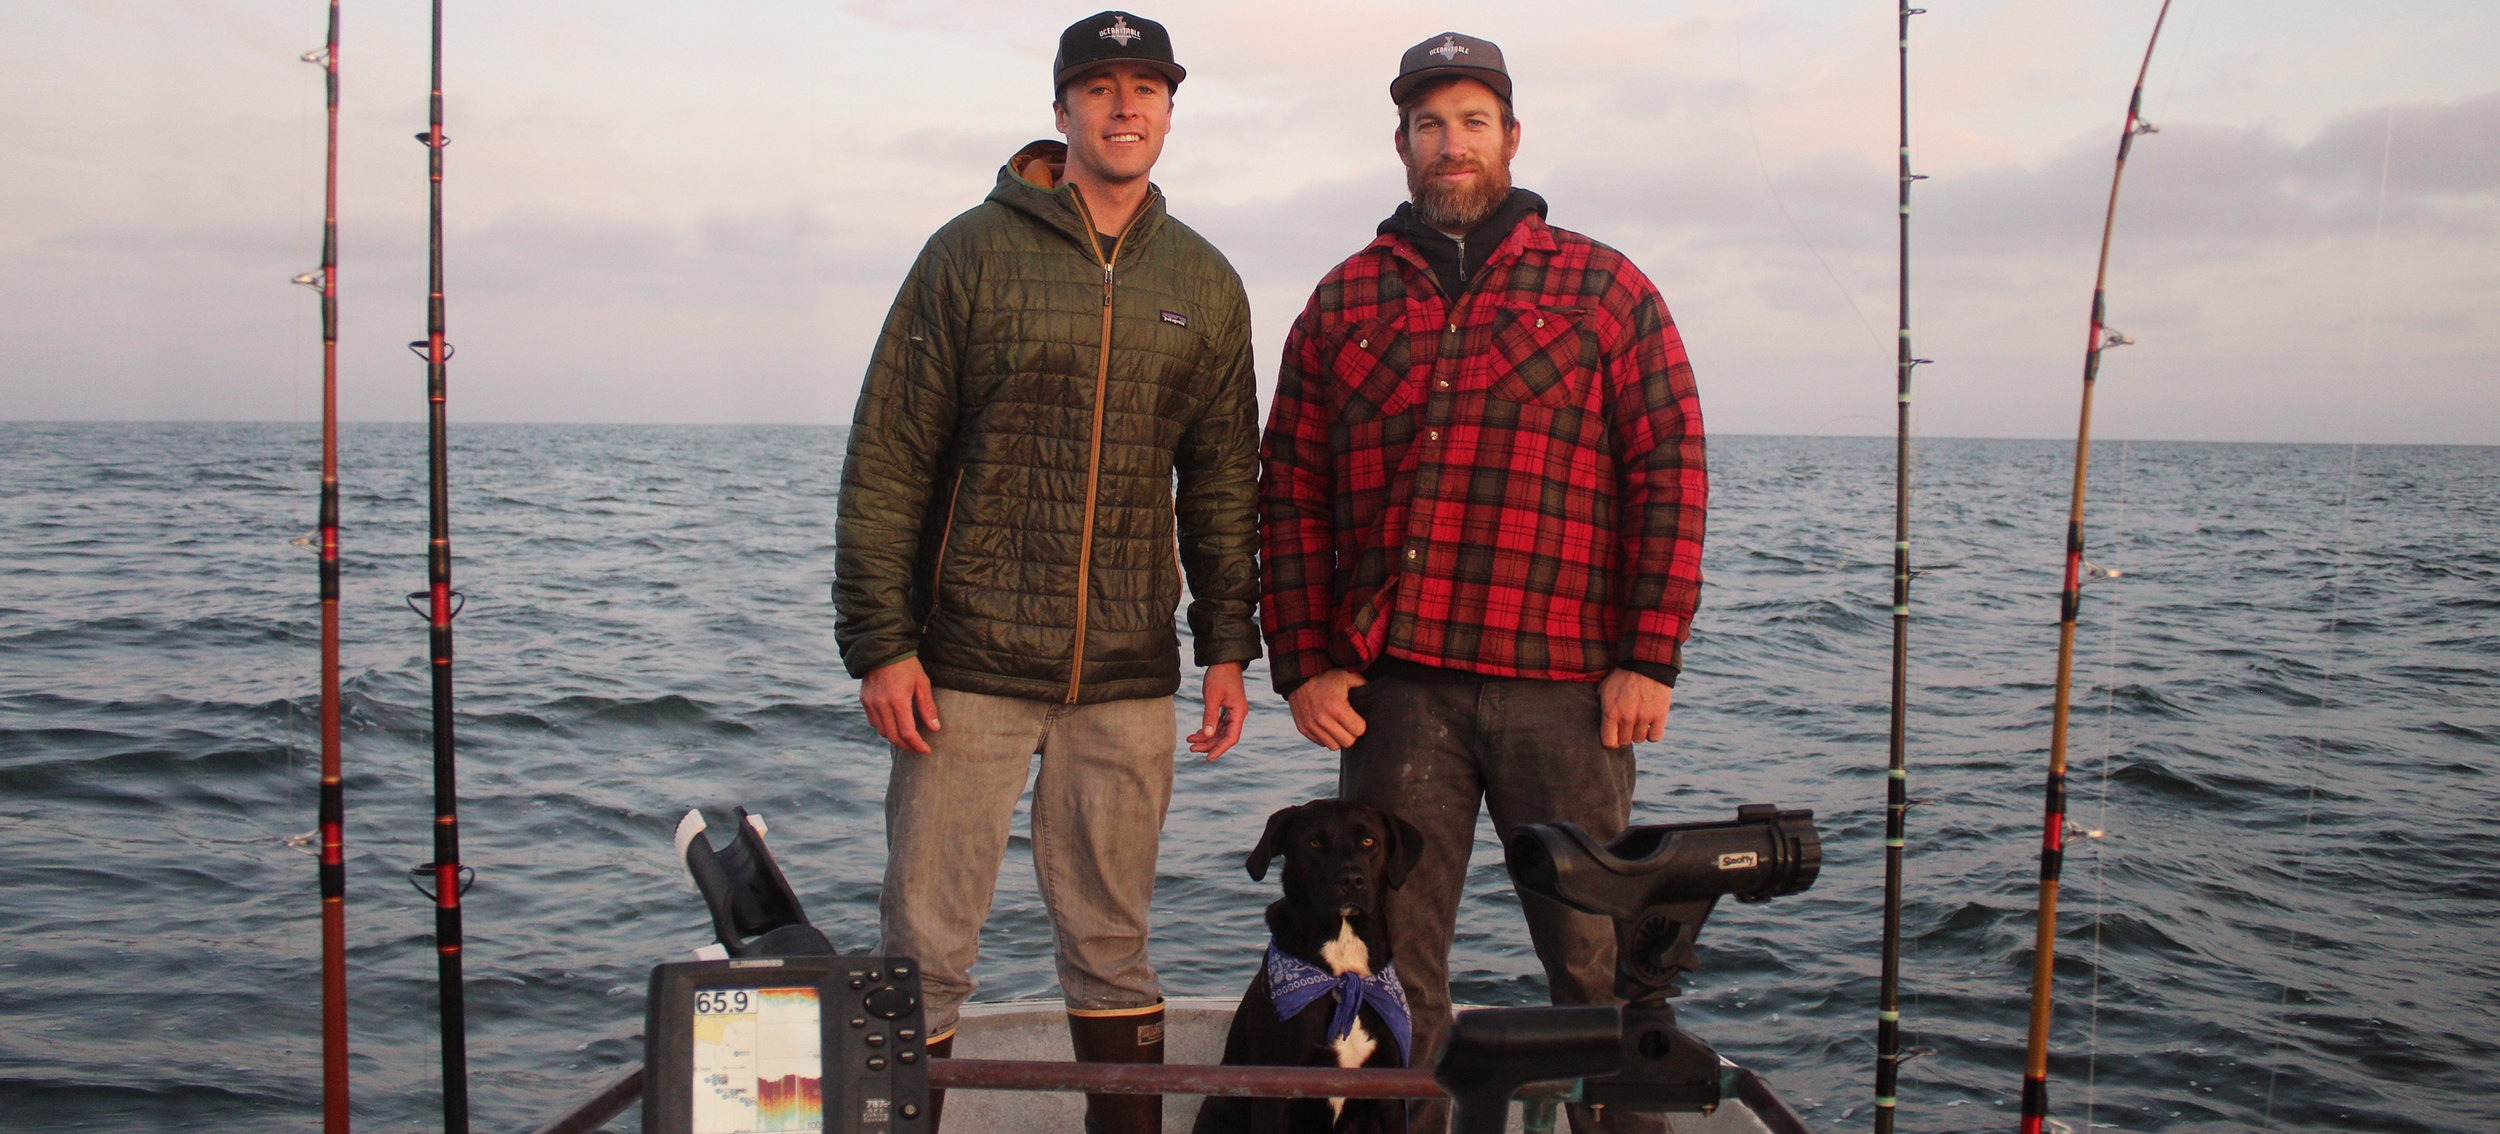 Fishermen, best friends, and co-founders Charlie Lambert (L) and Ian Cole (R) of Ocean2Table. Photo credit: Charlie Lambert.